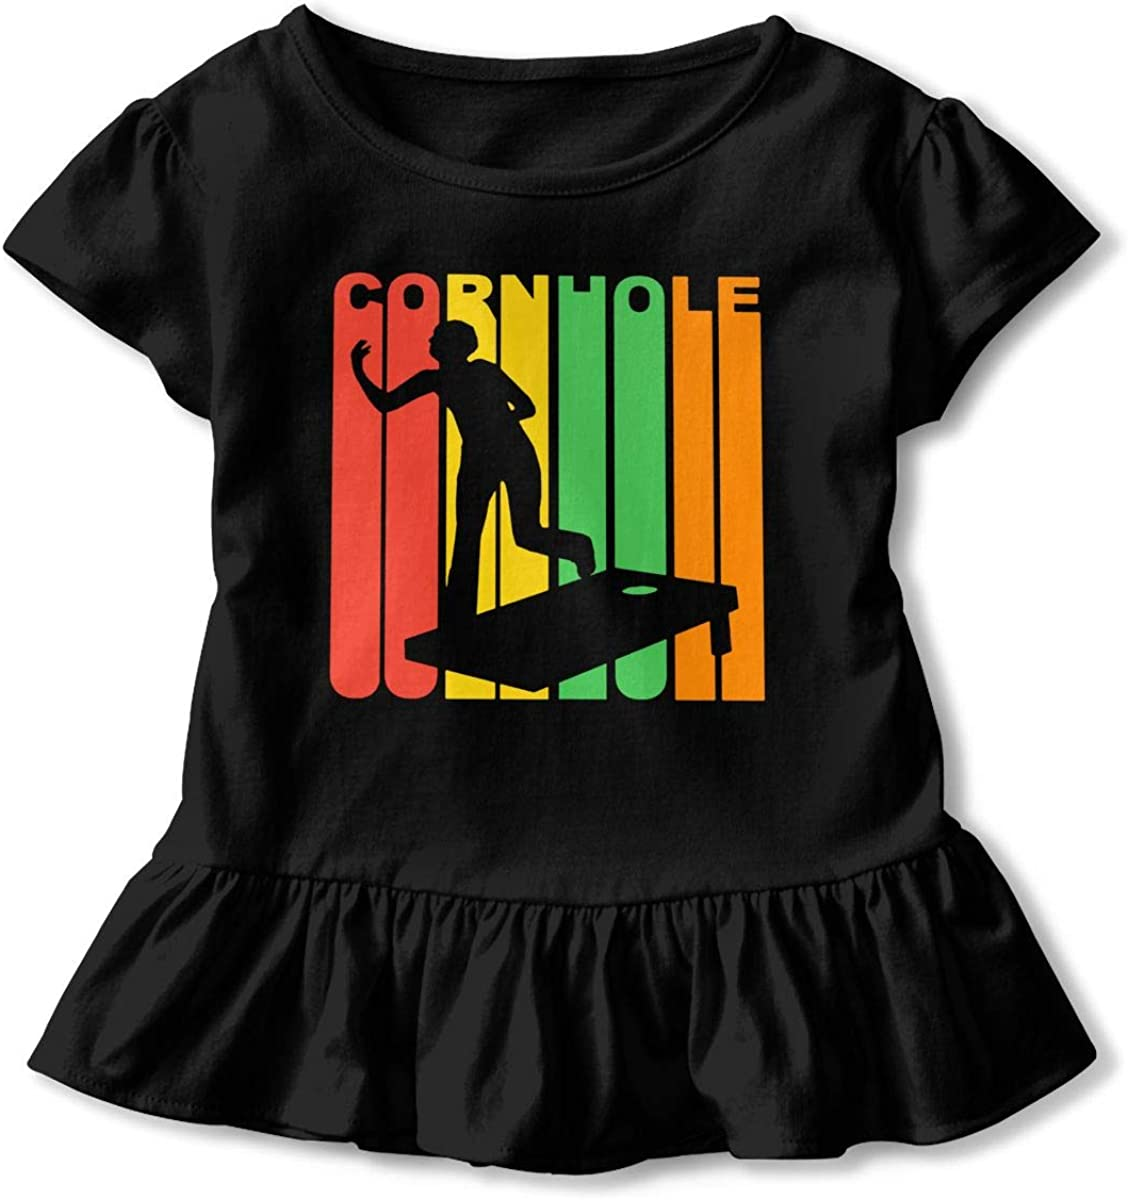 TS938S 1970s Style Cornhole Funny Ruffle Cotton Tops Tee Clothes Graphic for Little Girls Gift